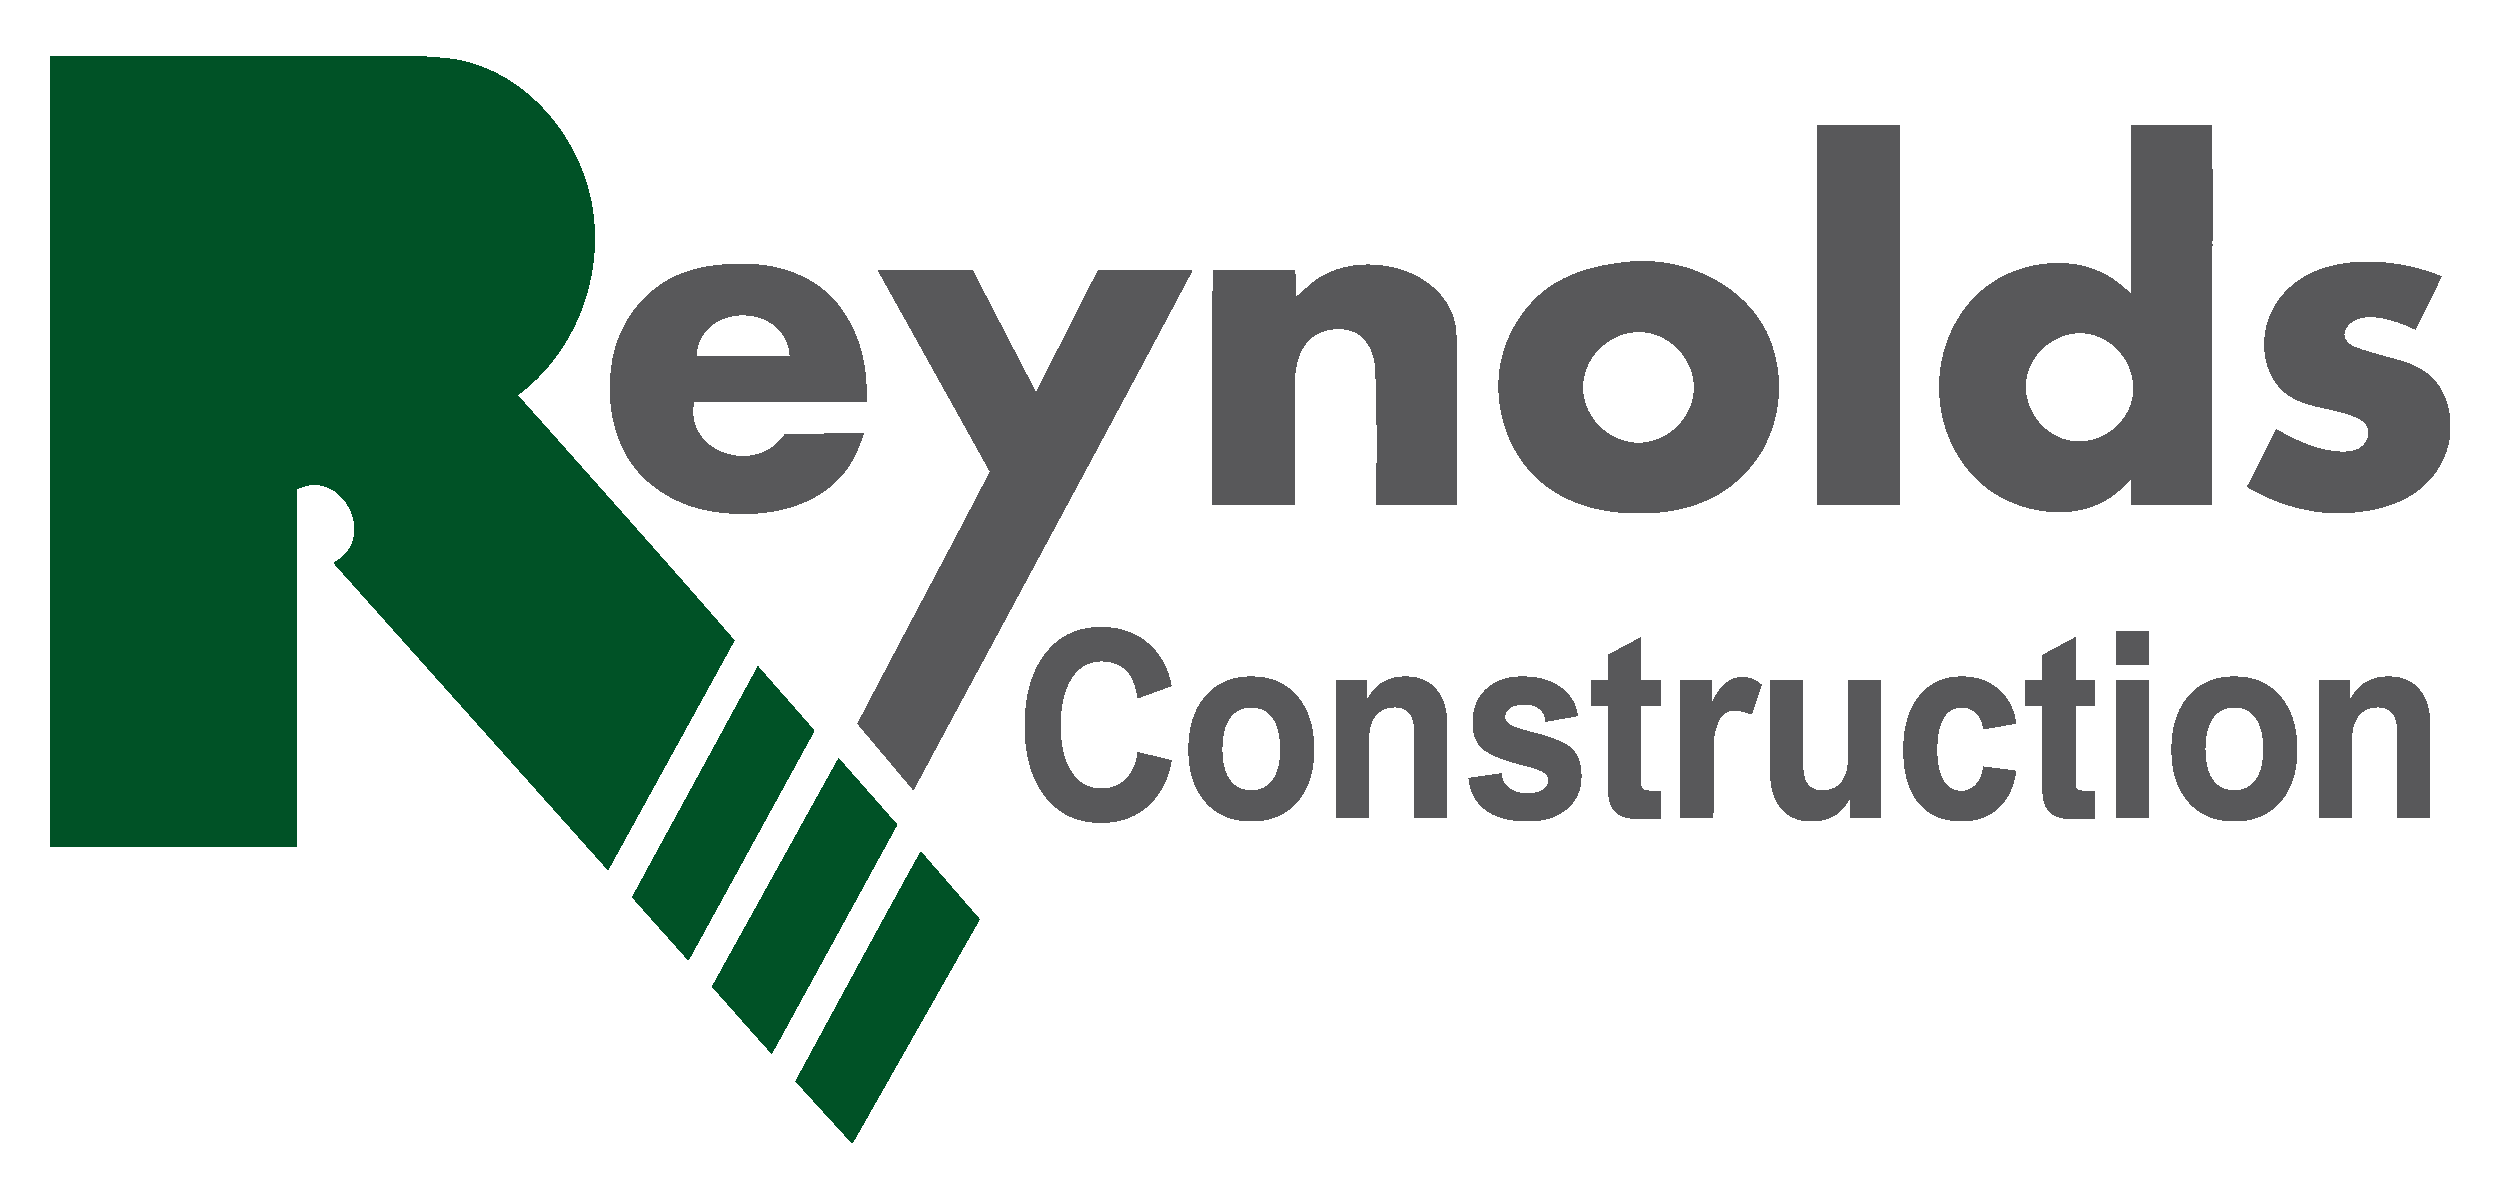 Reynolds Construction LLC-logo